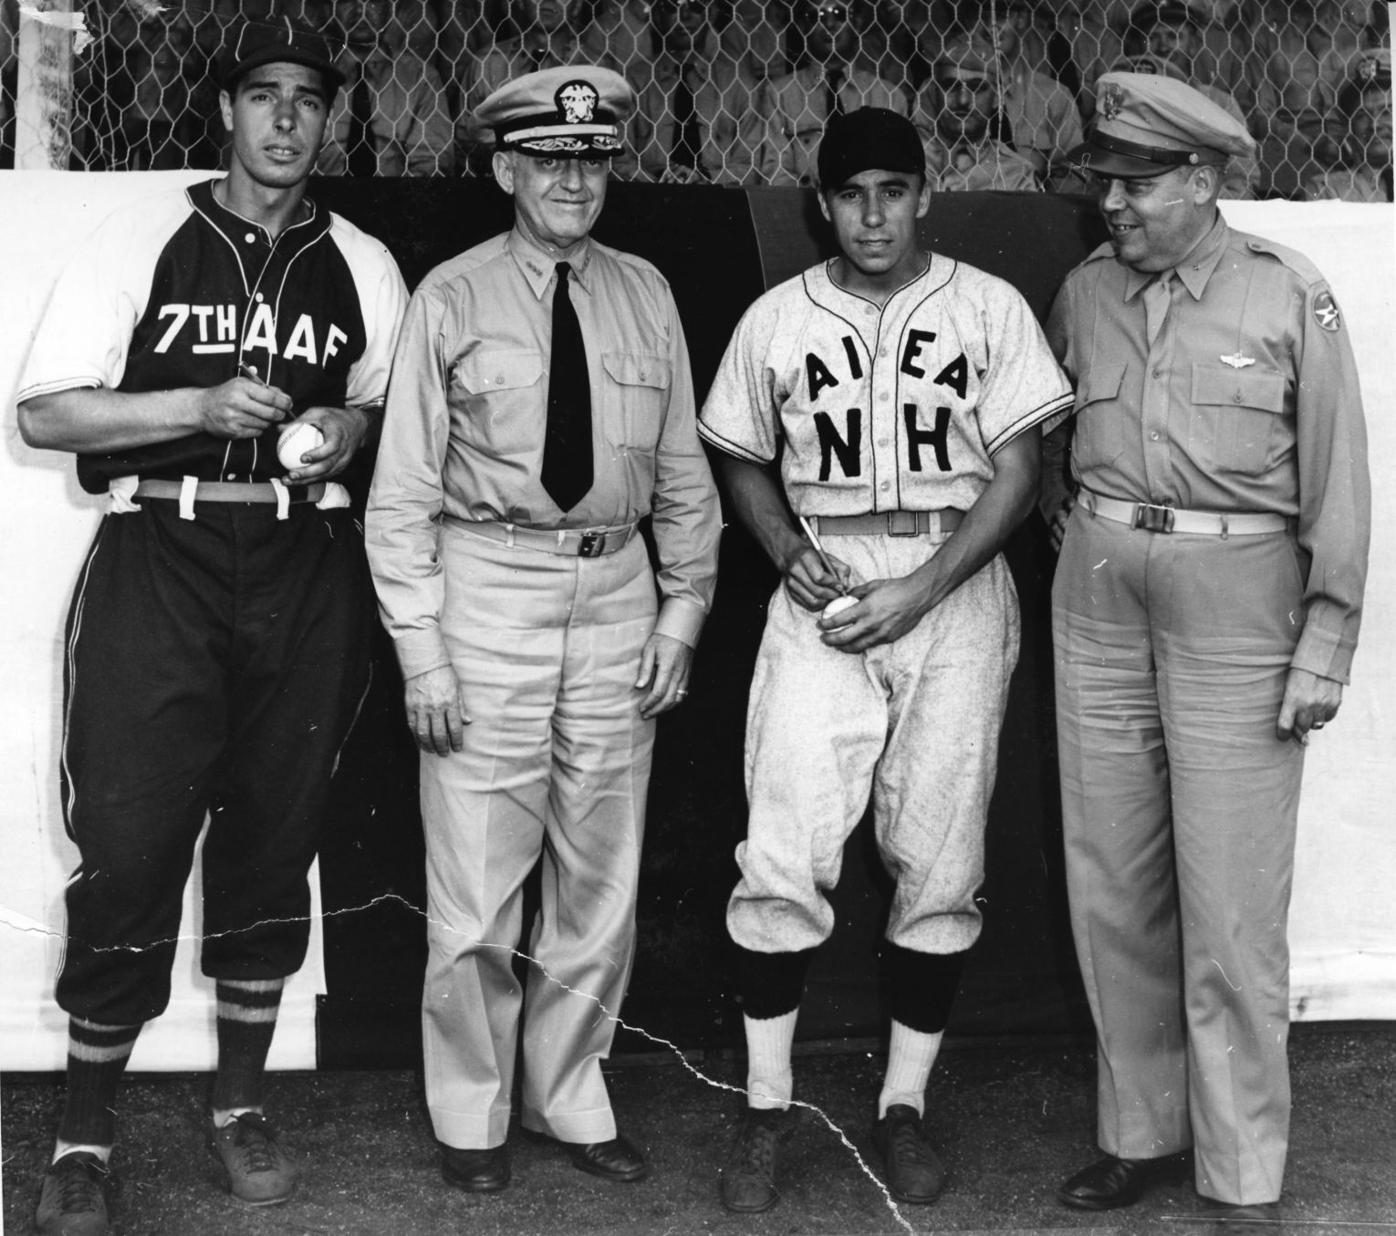 A look back at Navy Medicine's curious baseball heritage